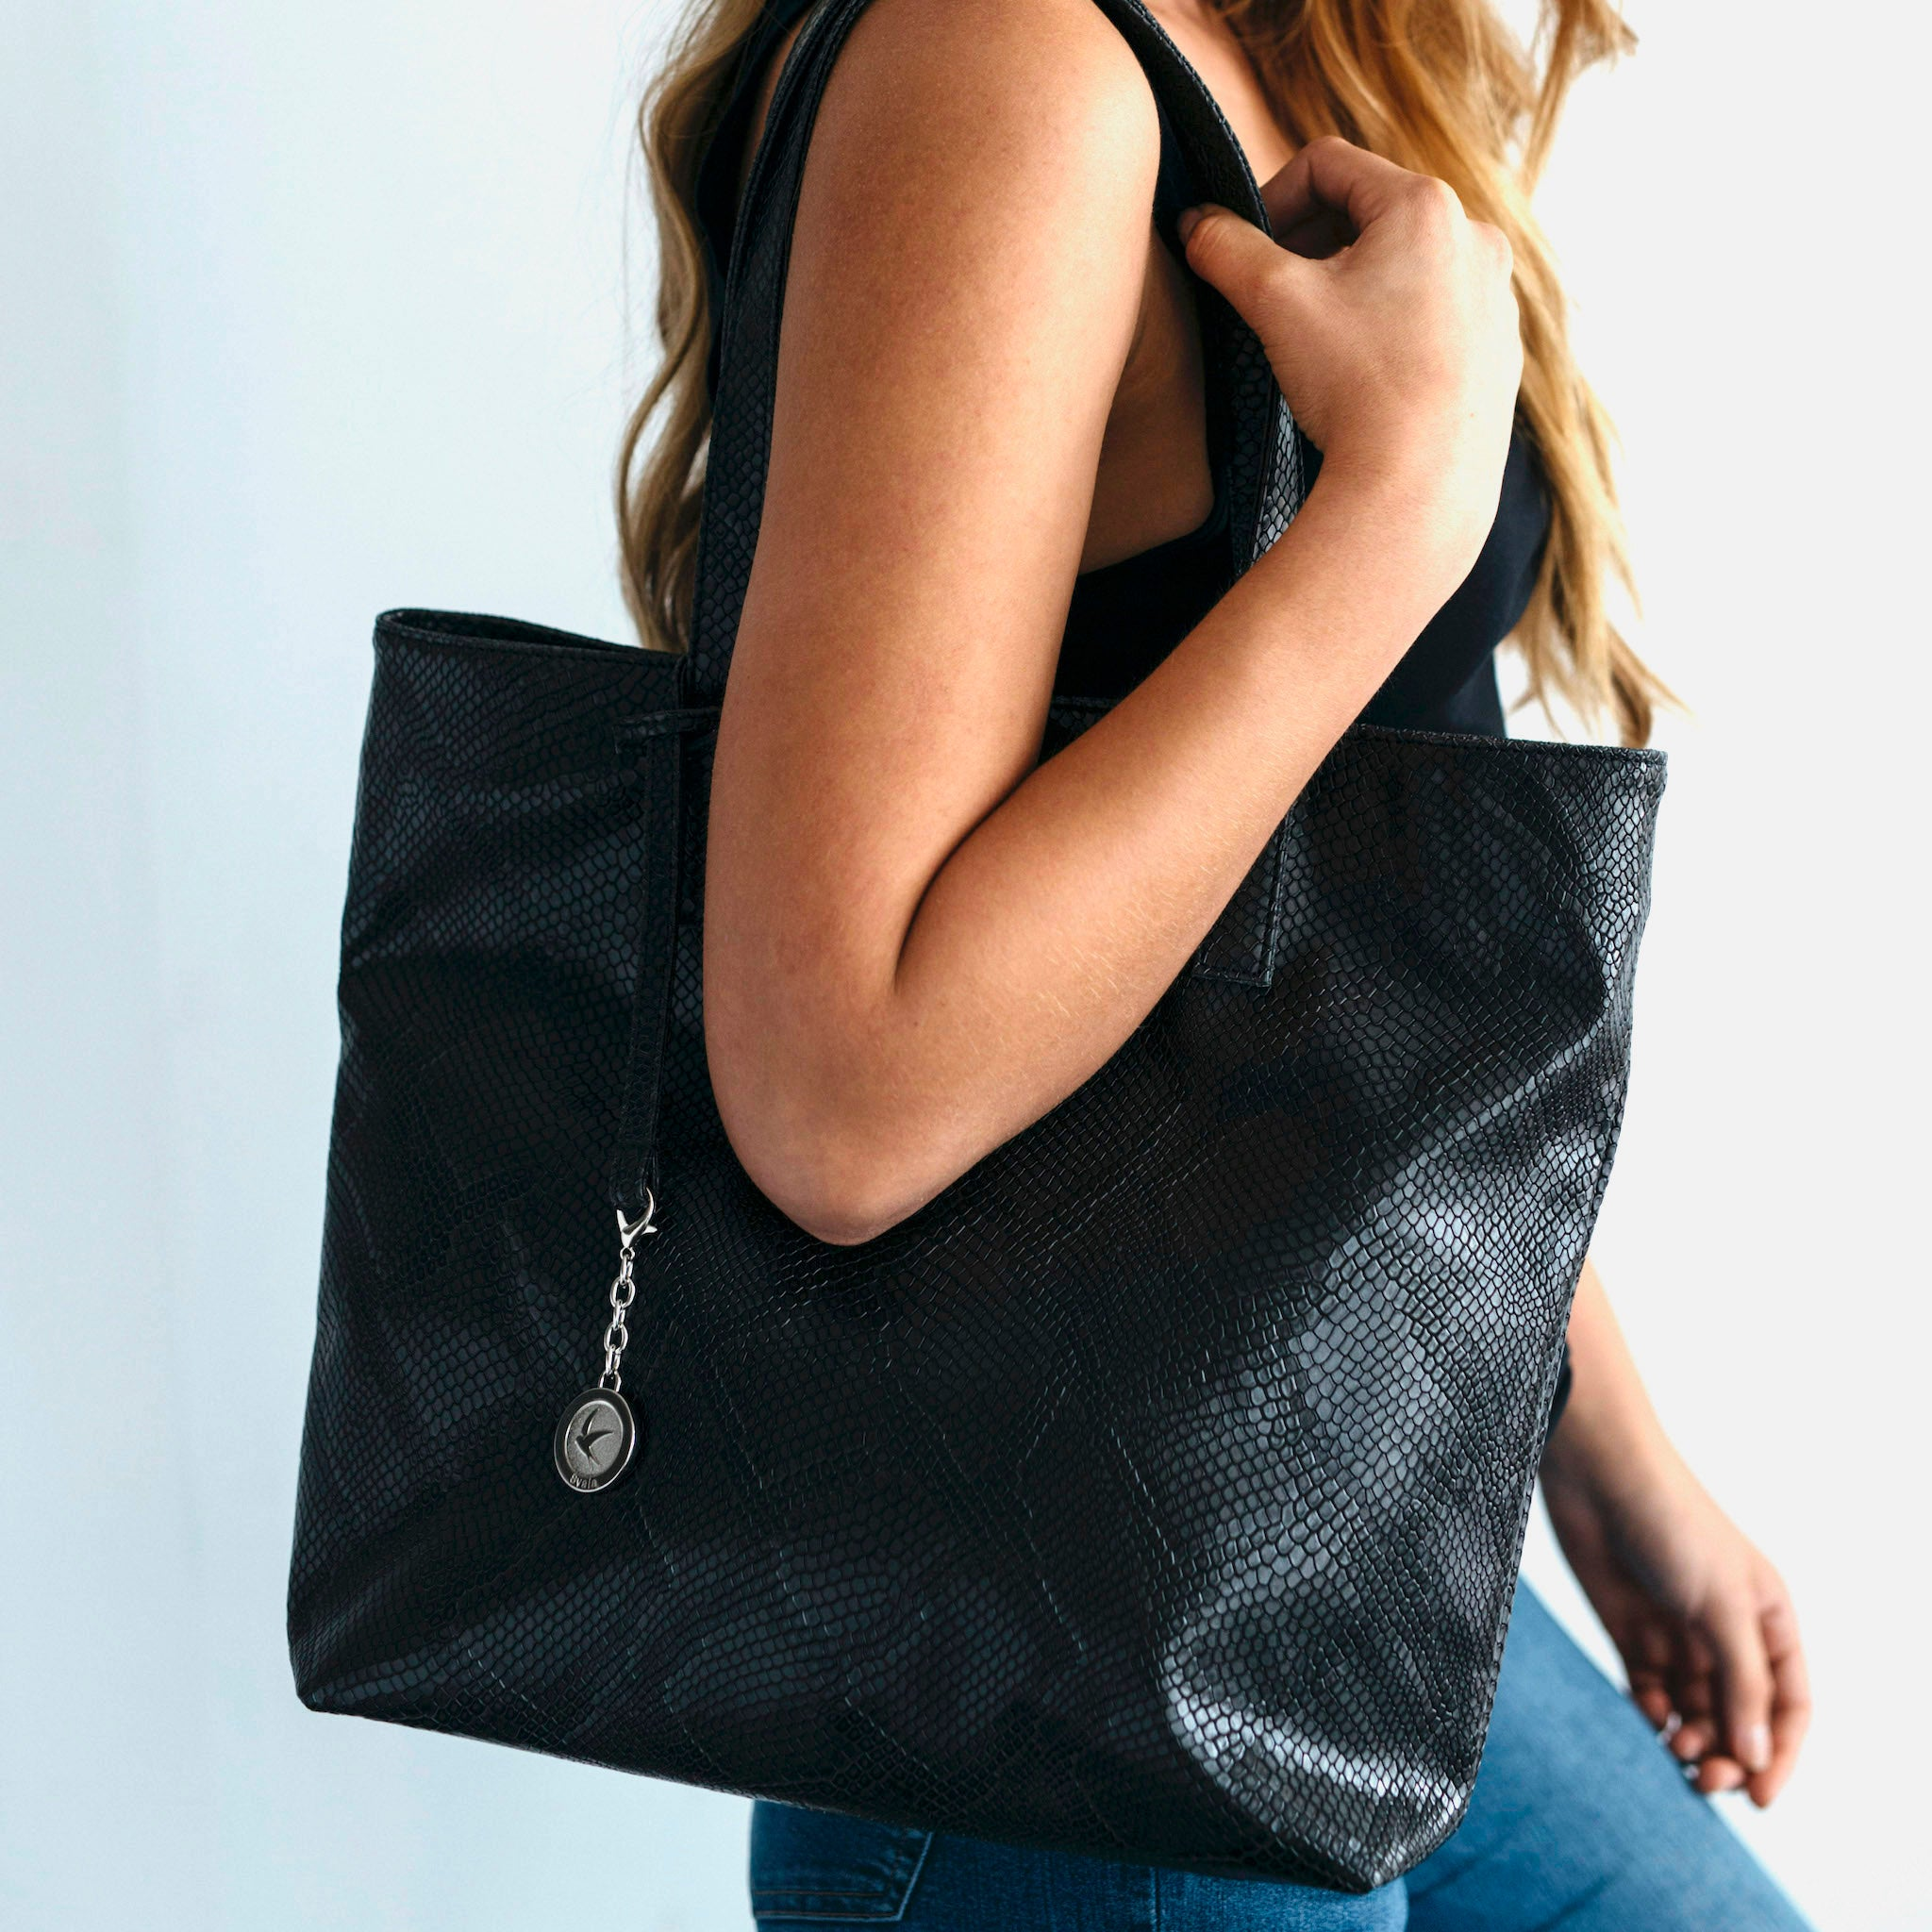 Svala Simma luxury vegan tote handbag in black